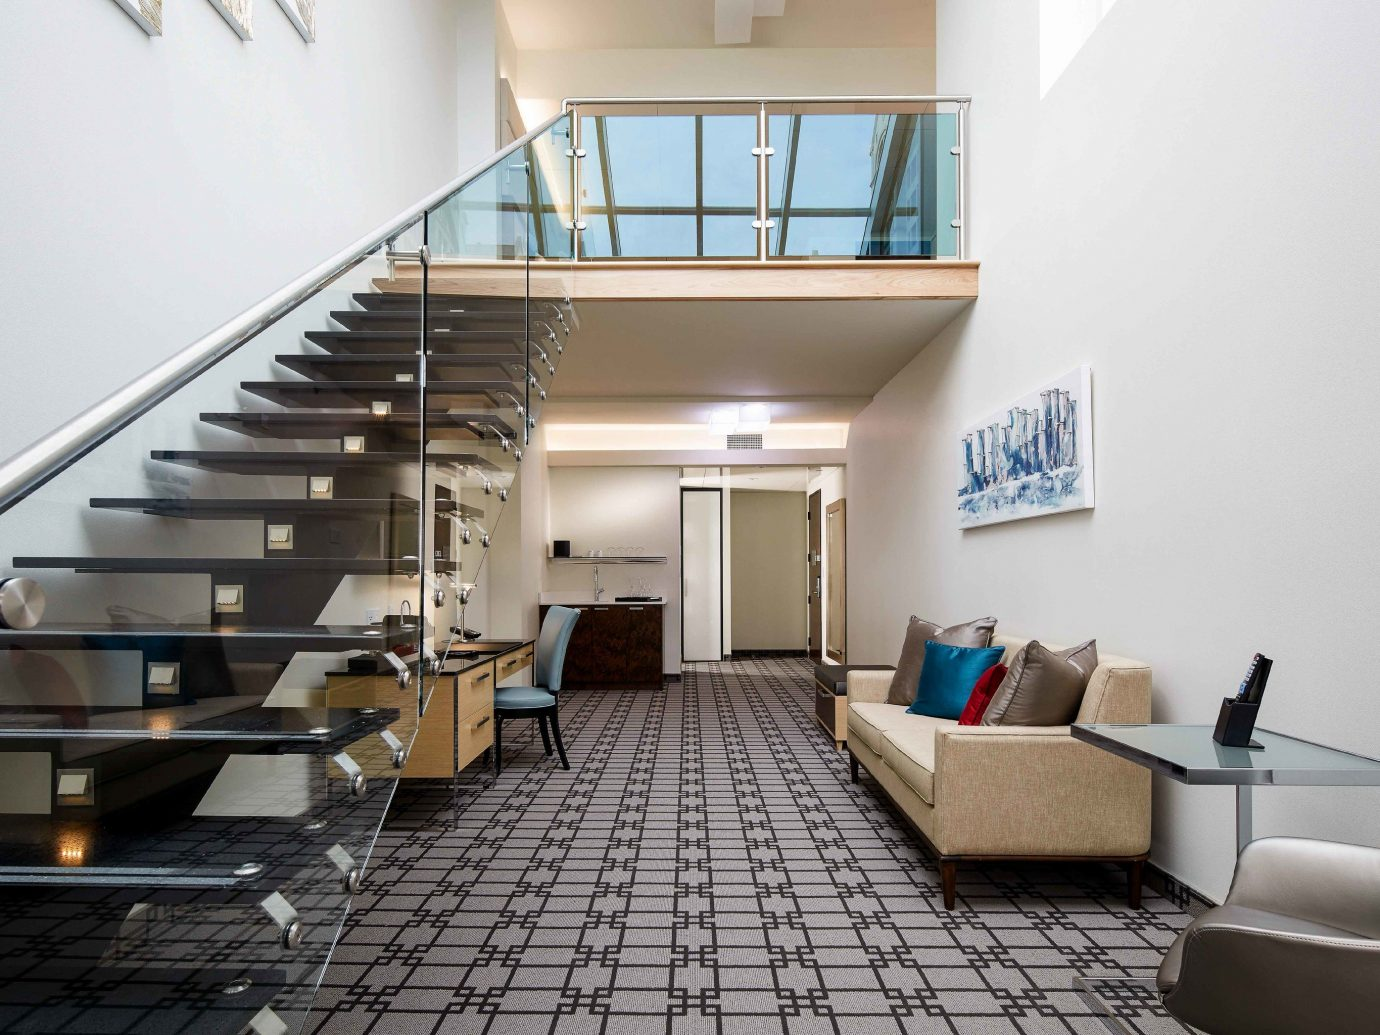 Boutique Hotels Chicago Hotels property stairs interior design Lobby real estate living room daylighting loft apartment floor condominium handrail